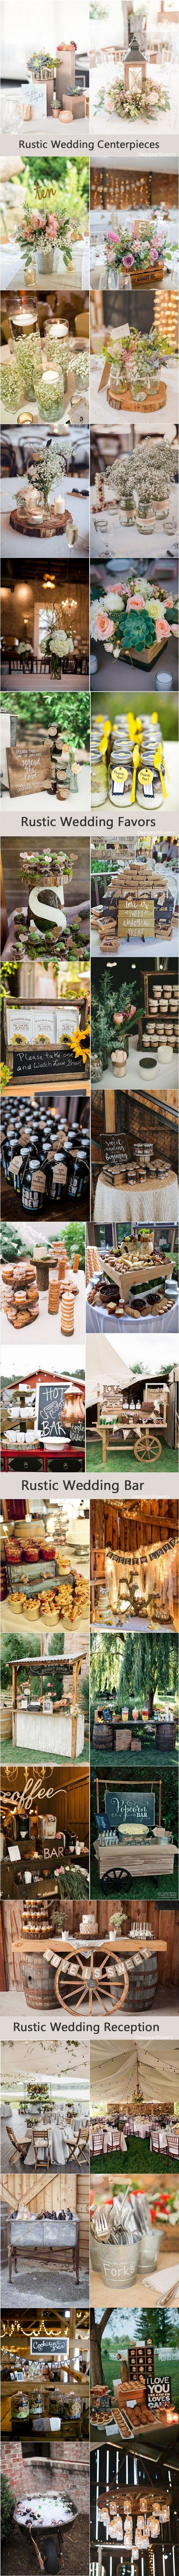 Wedding venue decorations ideas november 2018  best My wedding images on Pinterest  Weddings Mariage and